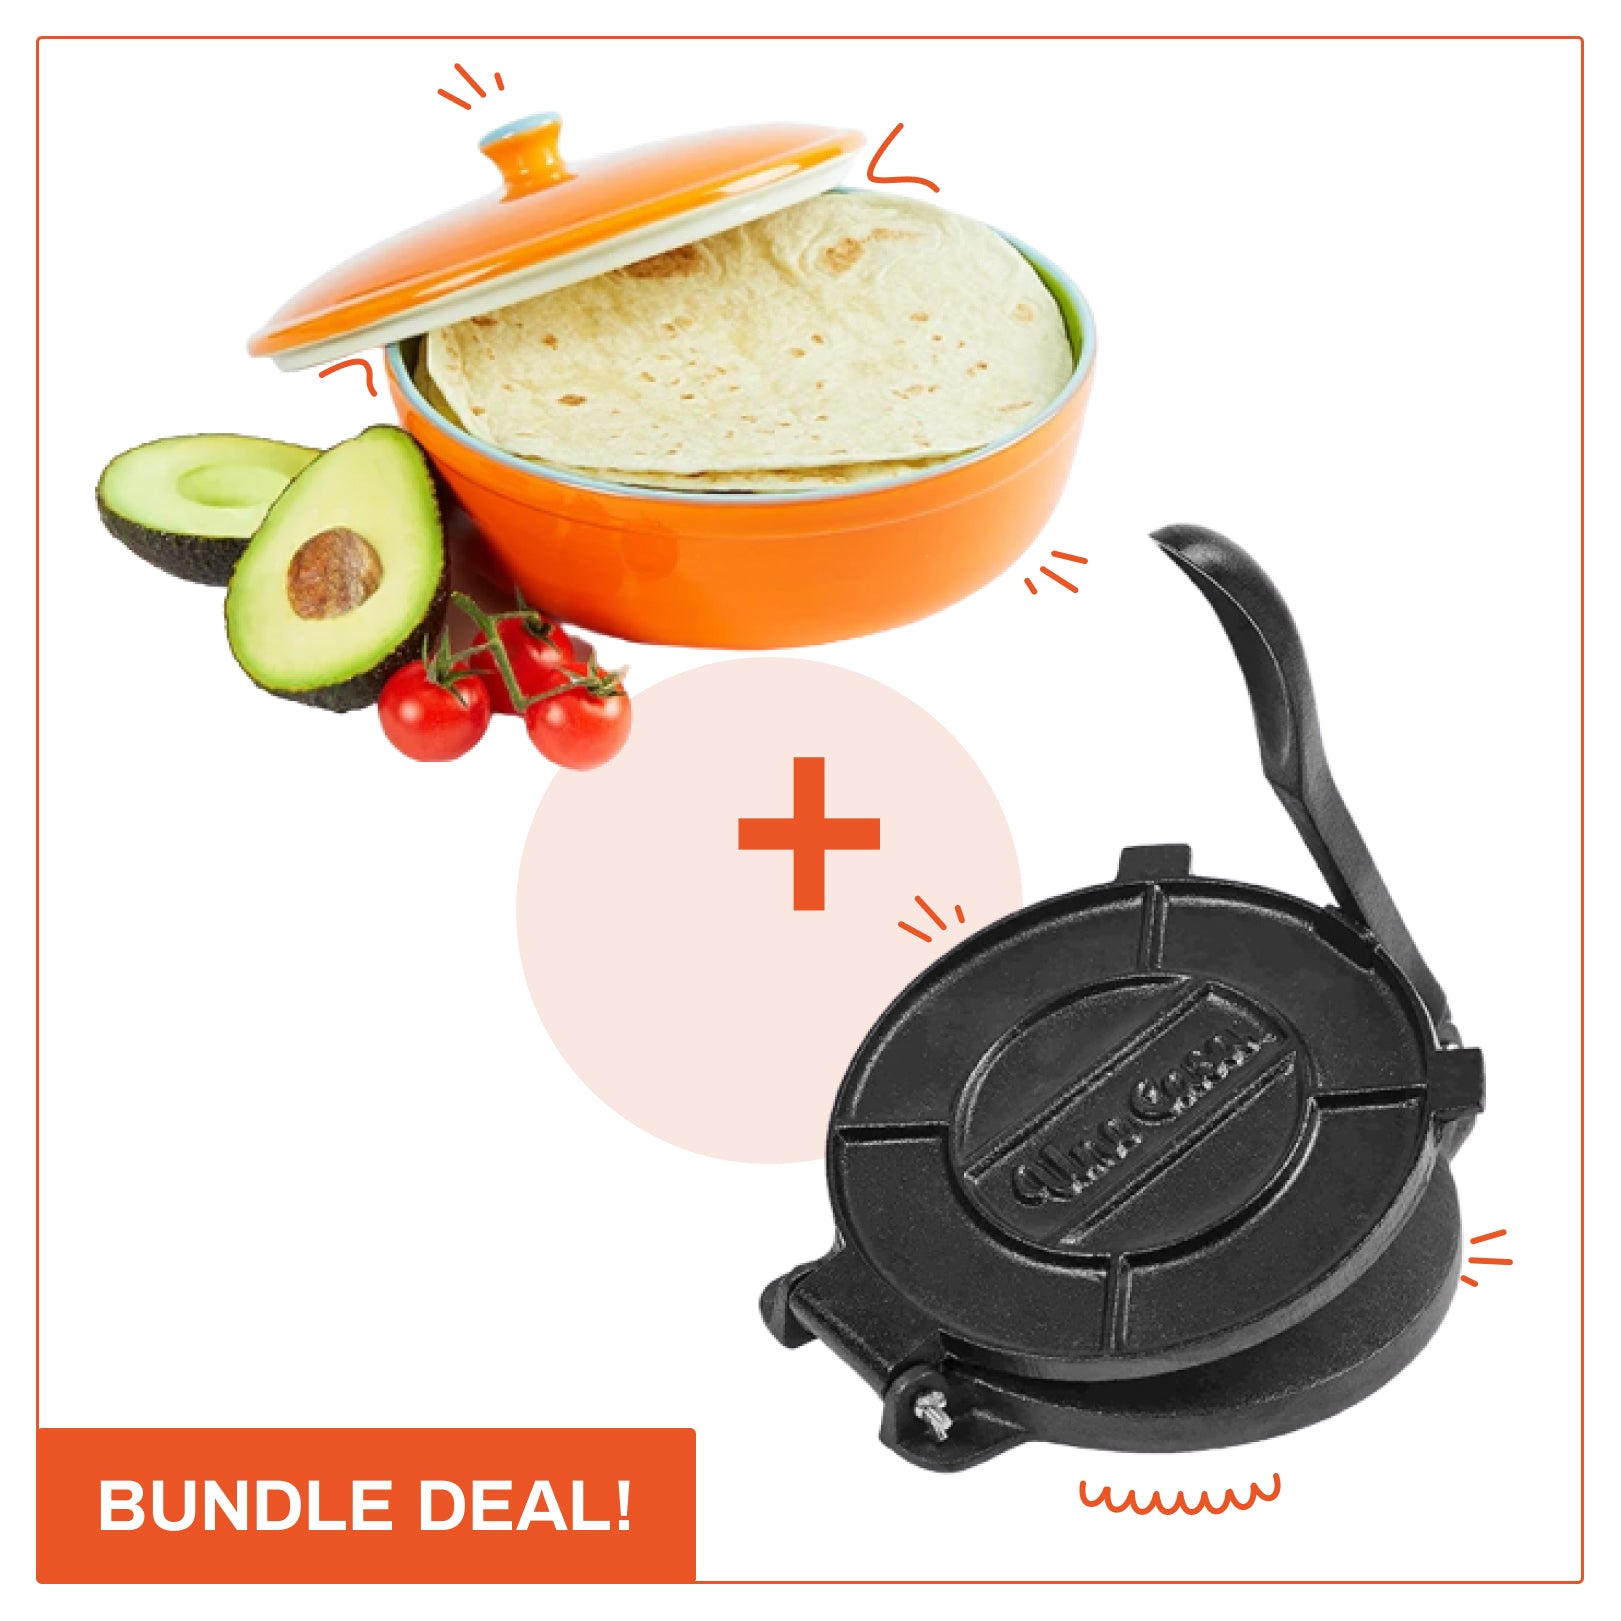 Tortilla Press + Tortilla Warmer bundle